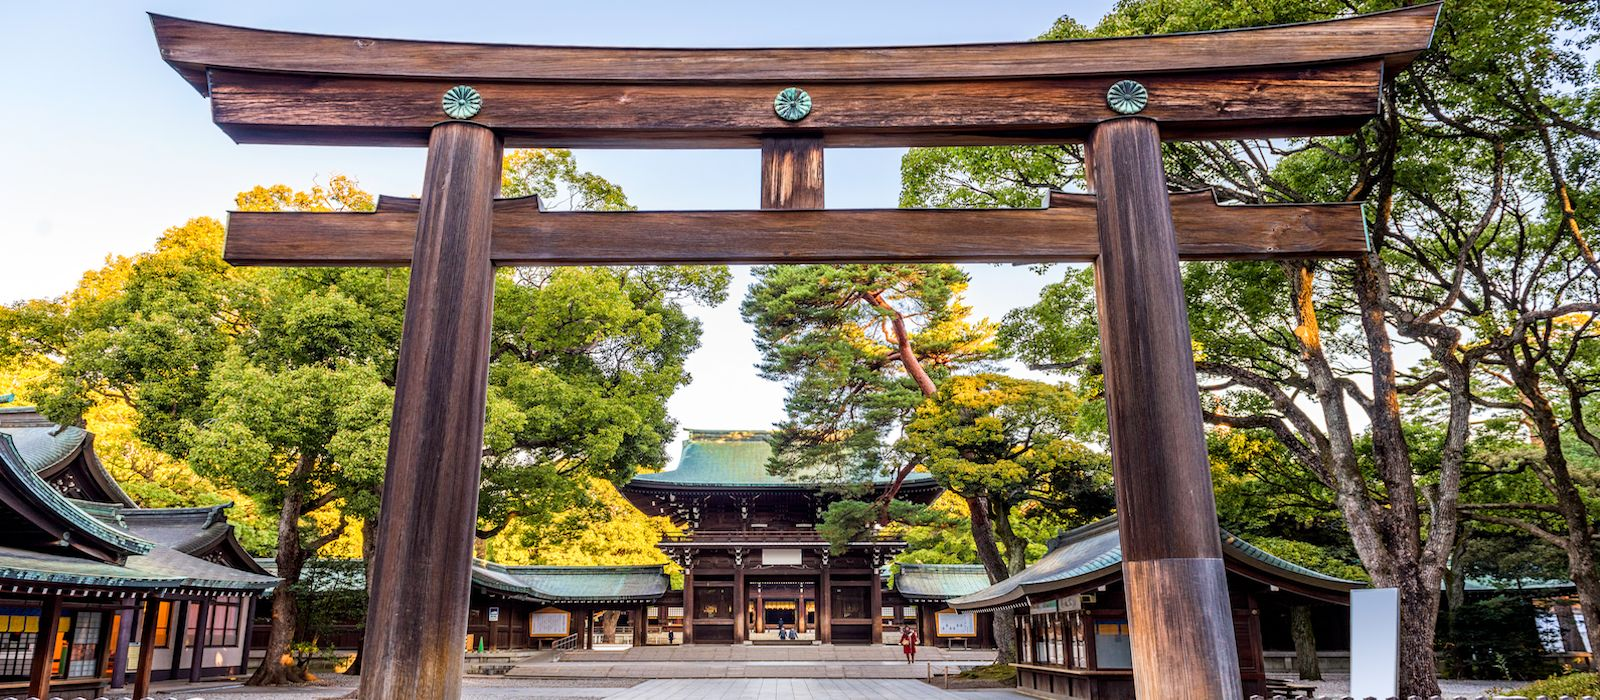 Exclusive Travel Tips for Your Destination Kyoto in Japan